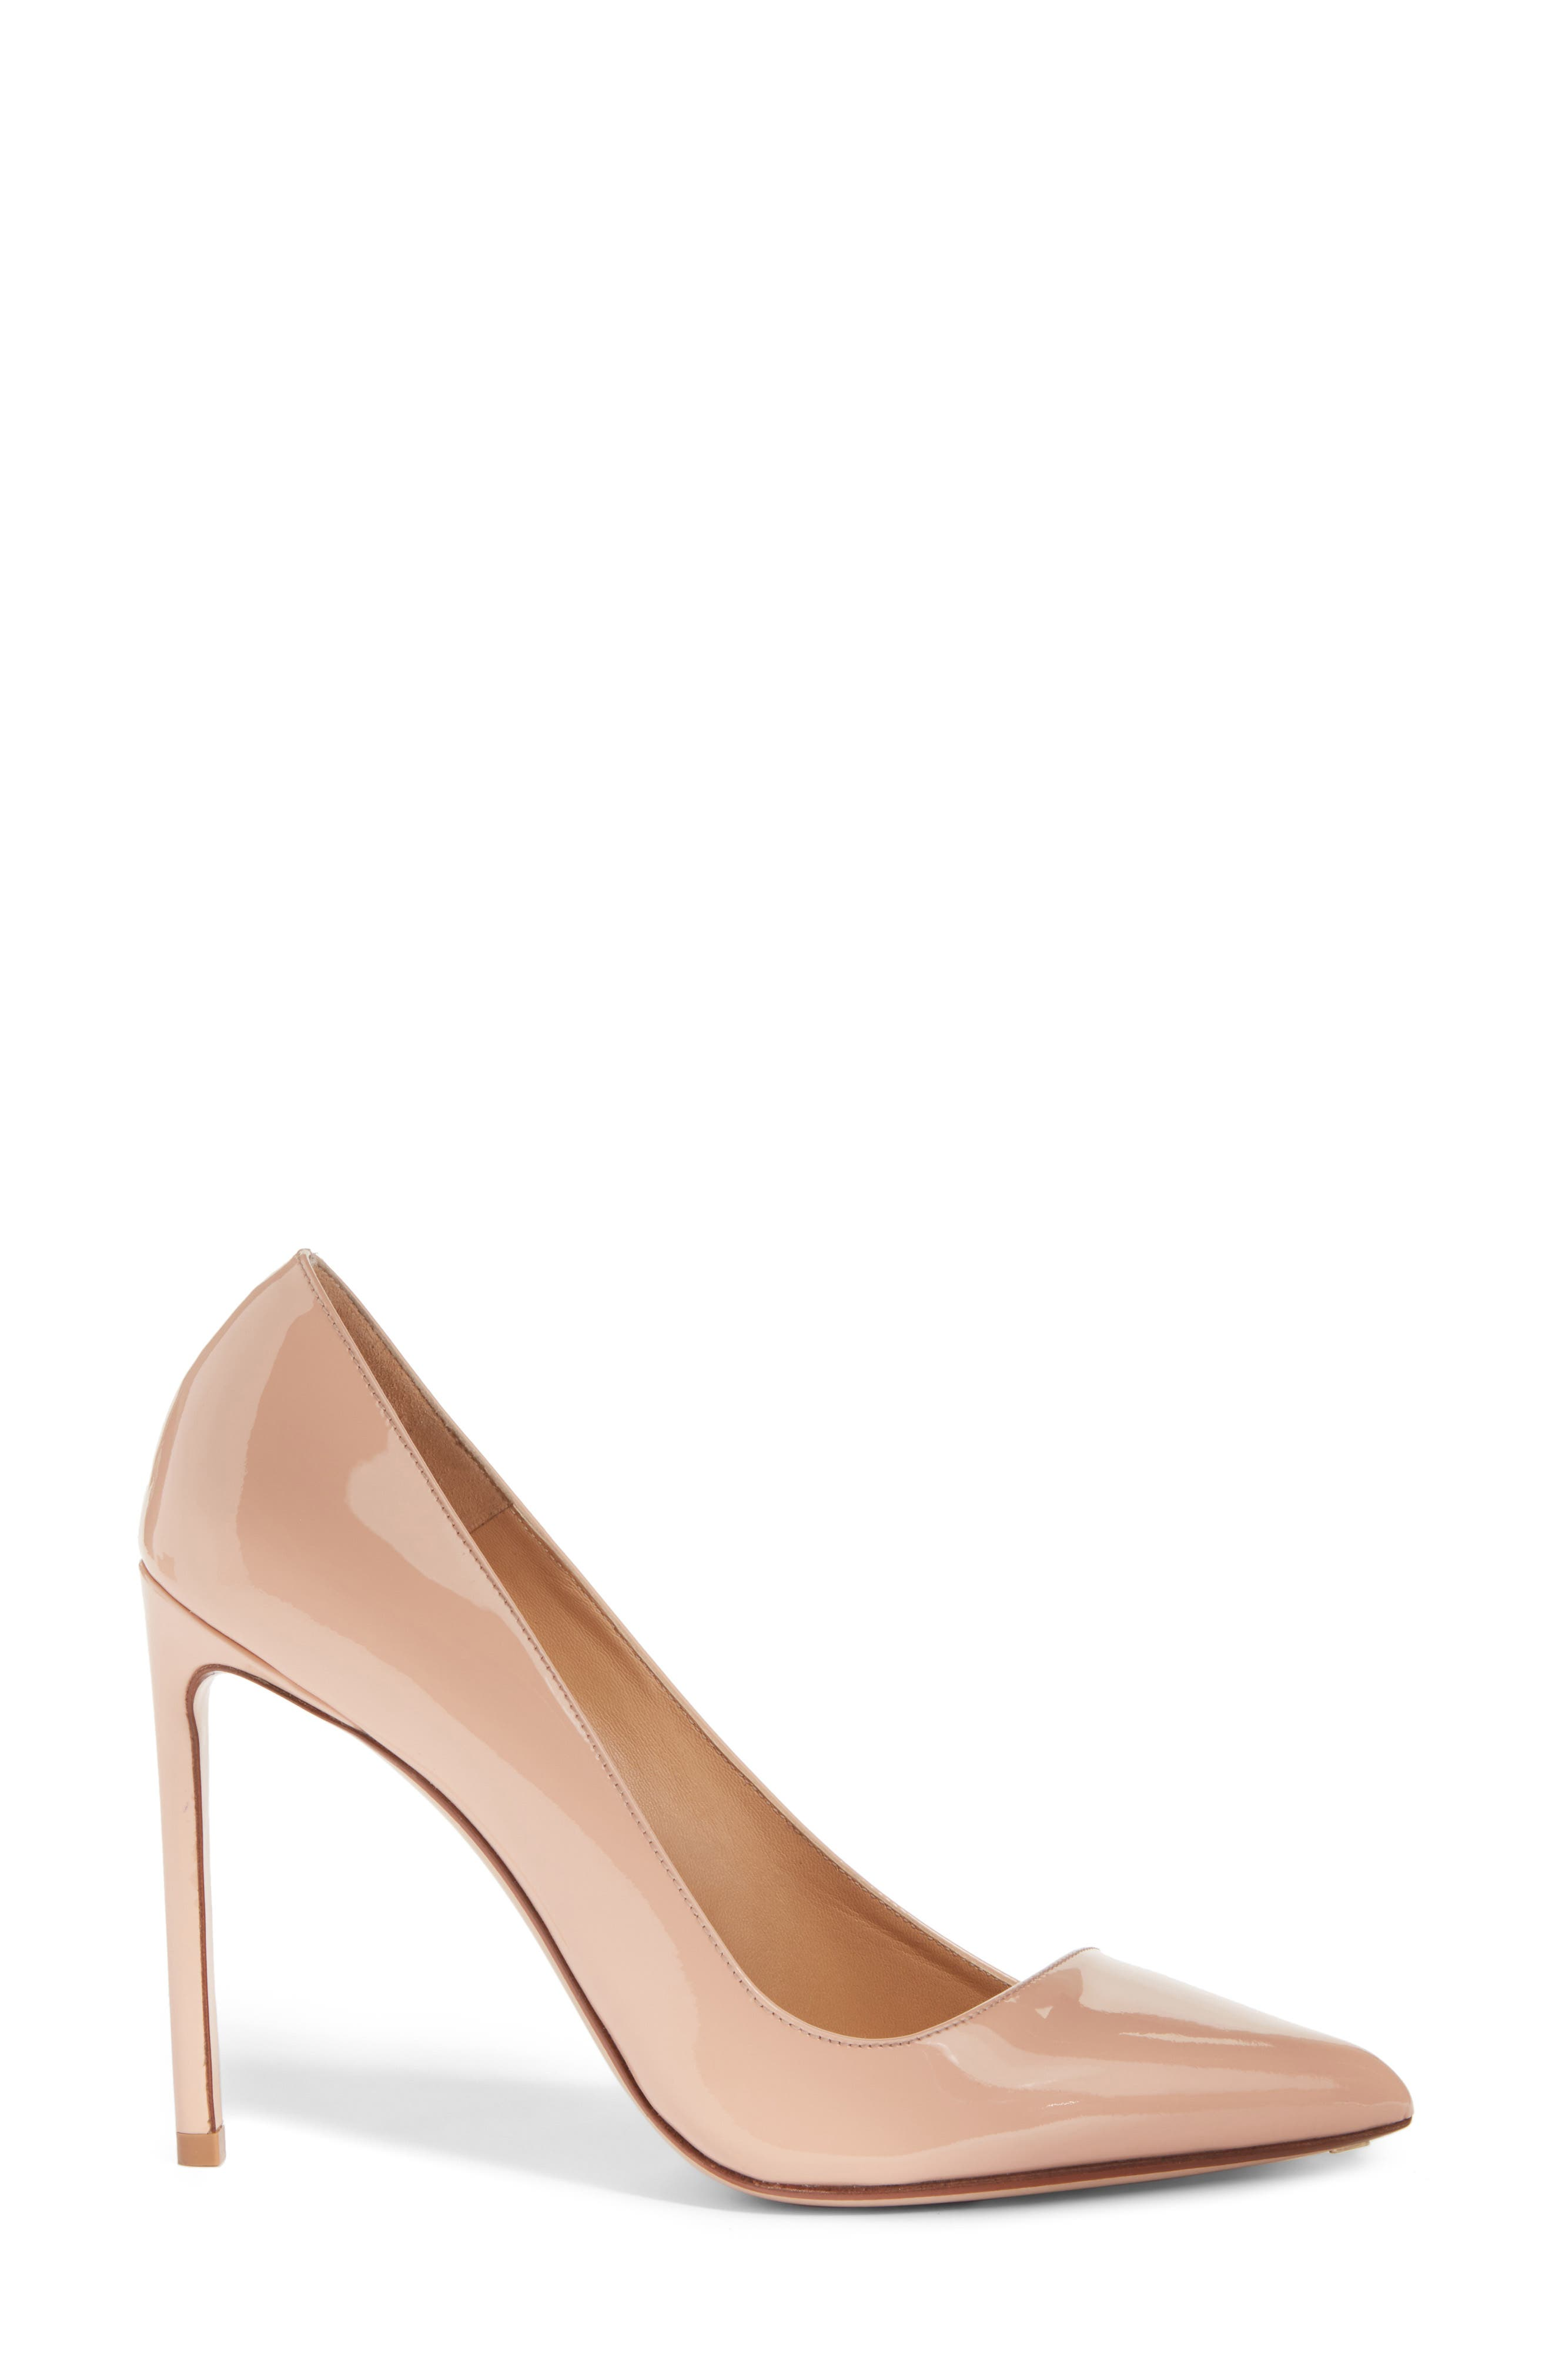 Pointy Toe Pump,                             Alternate thumbnail 3, color,                             BEIGE LEATHER